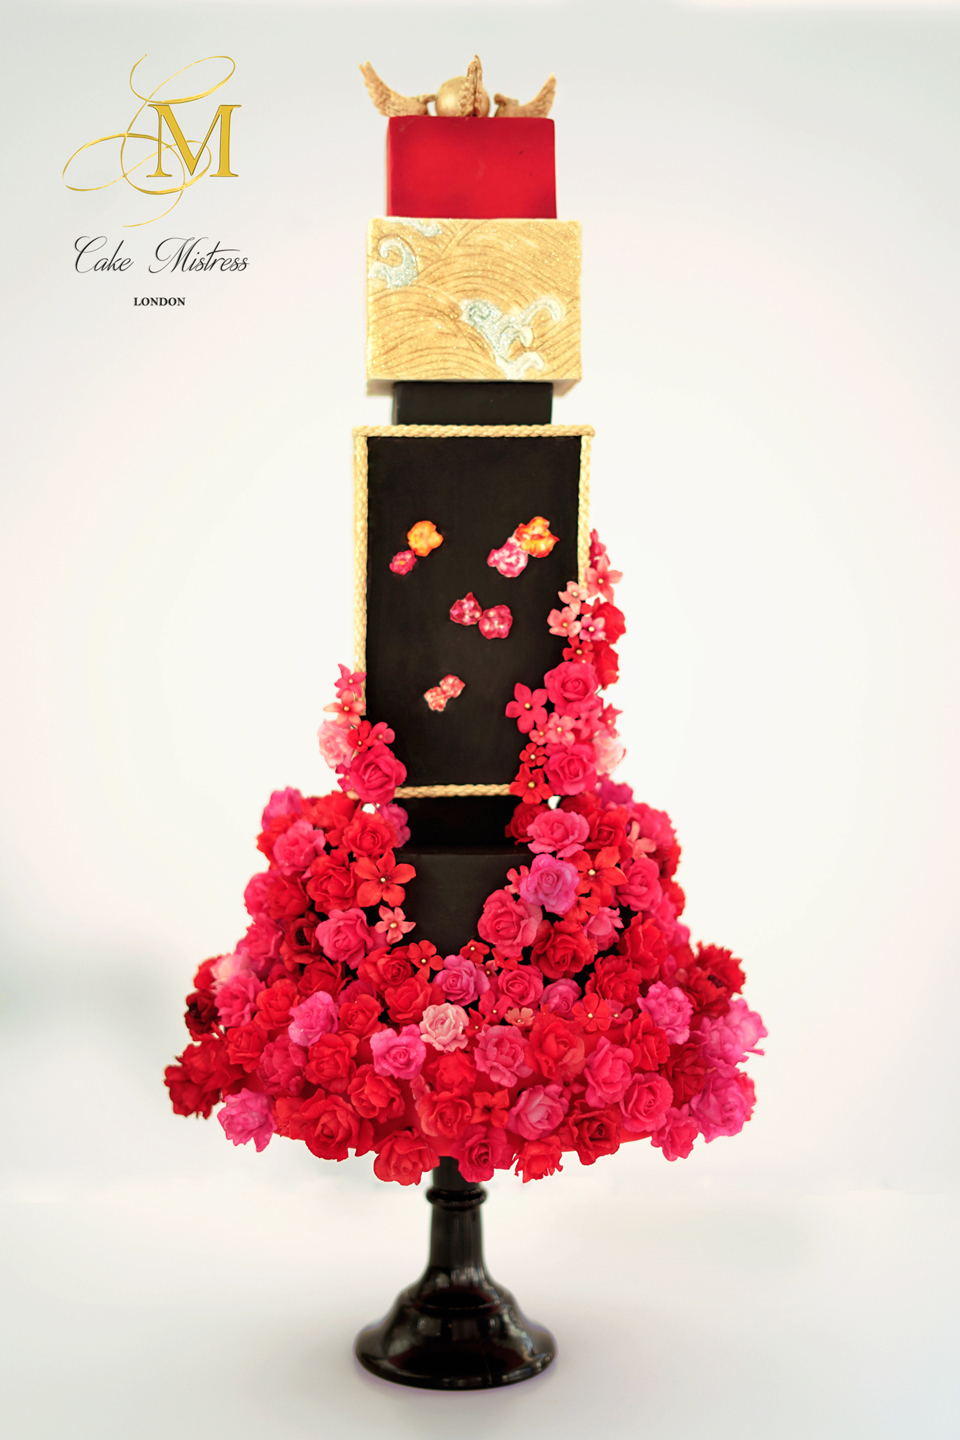 Black wedding cake with red sugar flowers